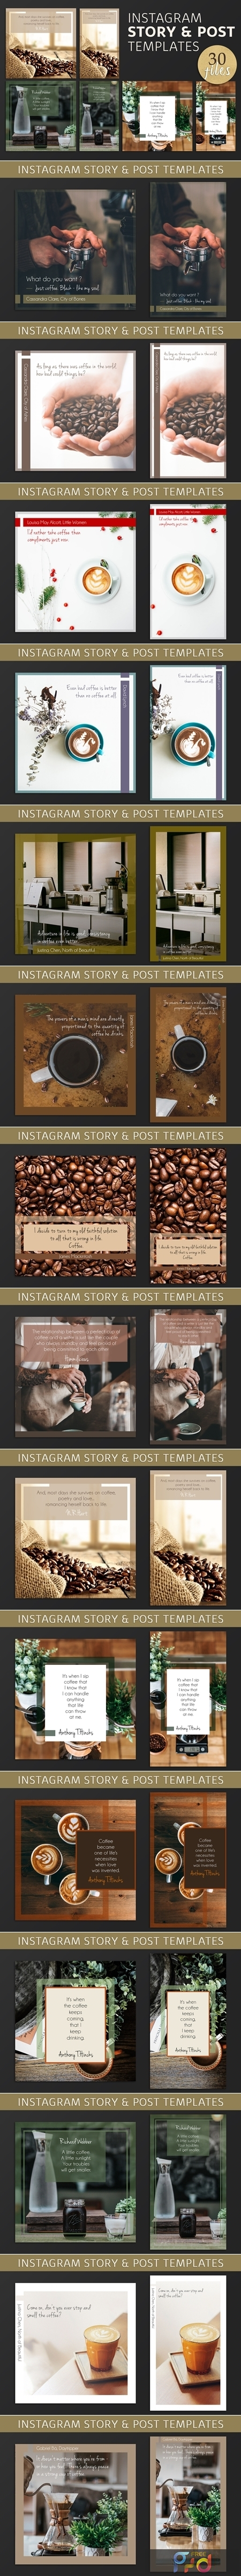 Instagram Post & Story Templates 3589023 1